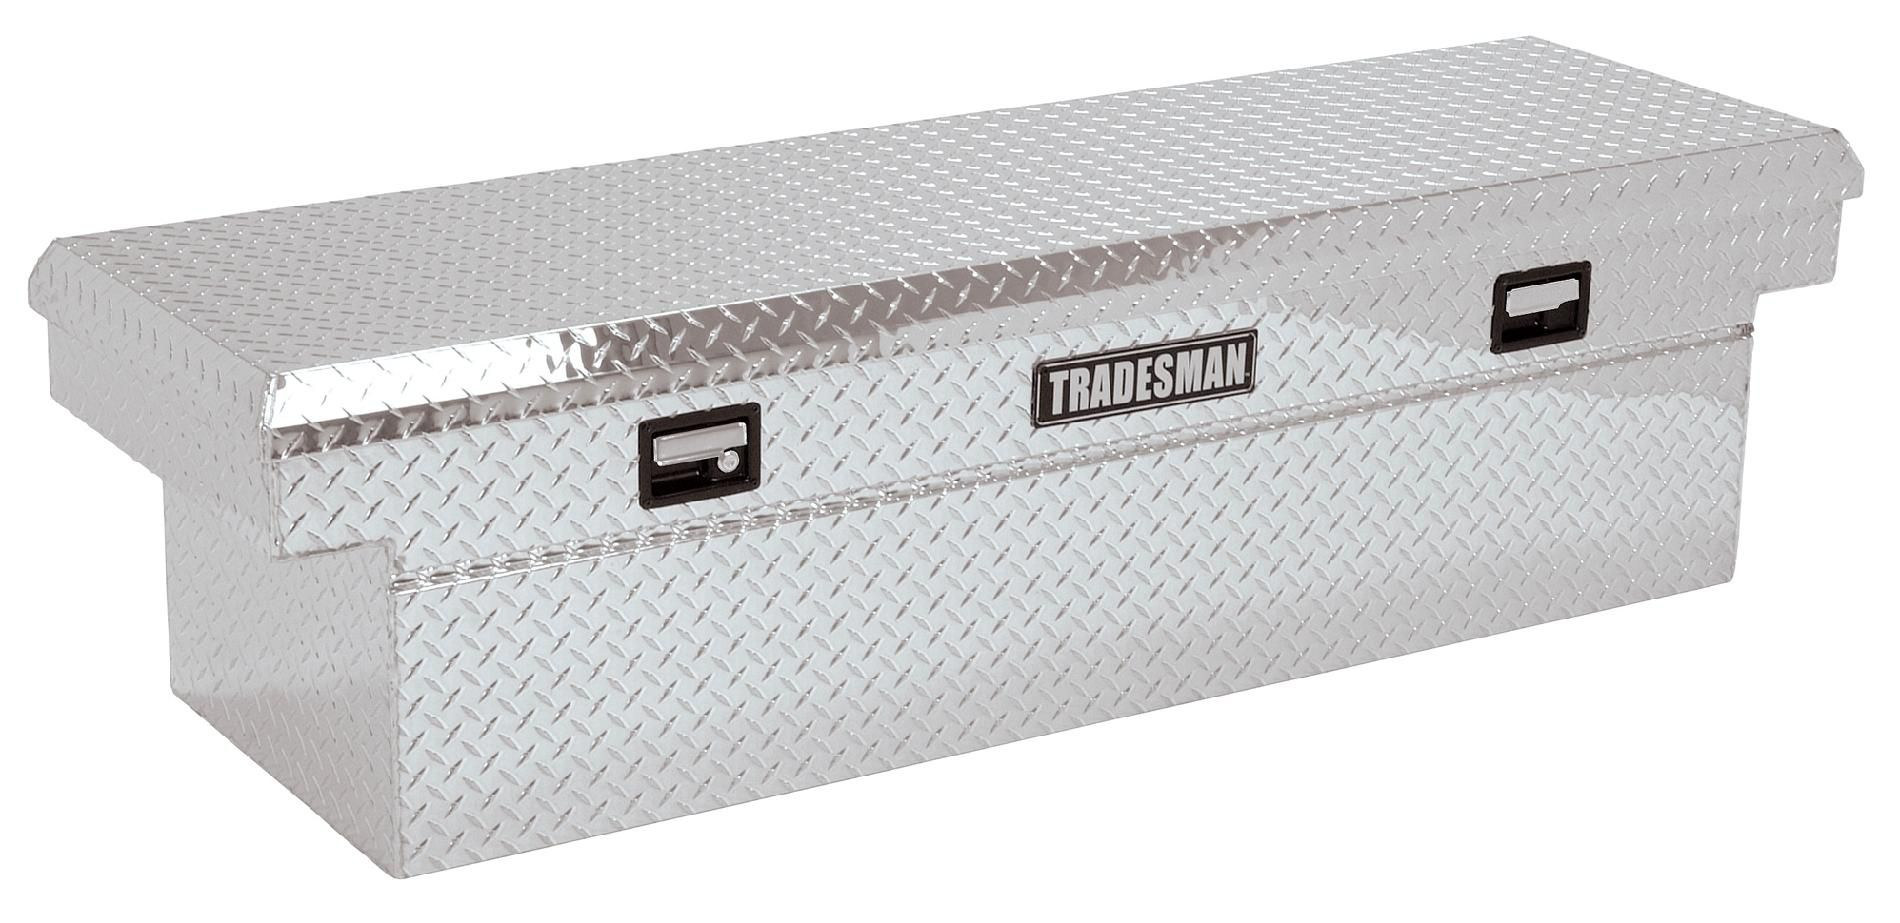 TALF2072D 72-Inch Aluminum Deep Well Full Lid Cross Bed Truck Tool Box,